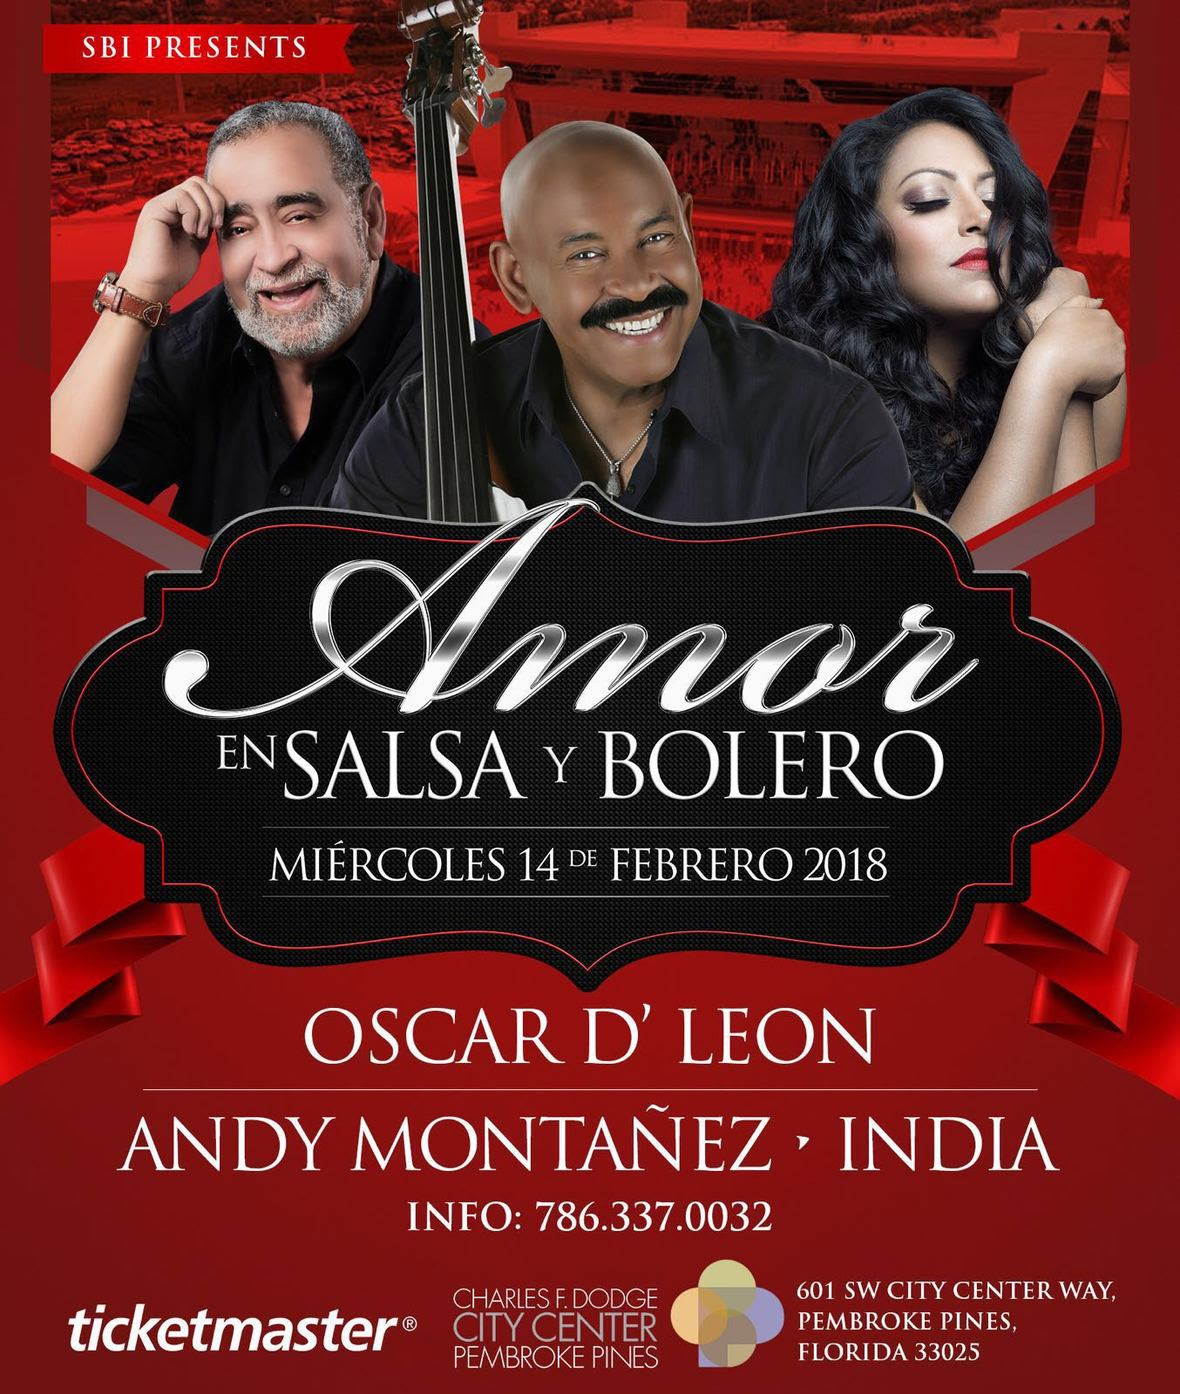 Oscar D Leon Andy Montanez y la India feb 14